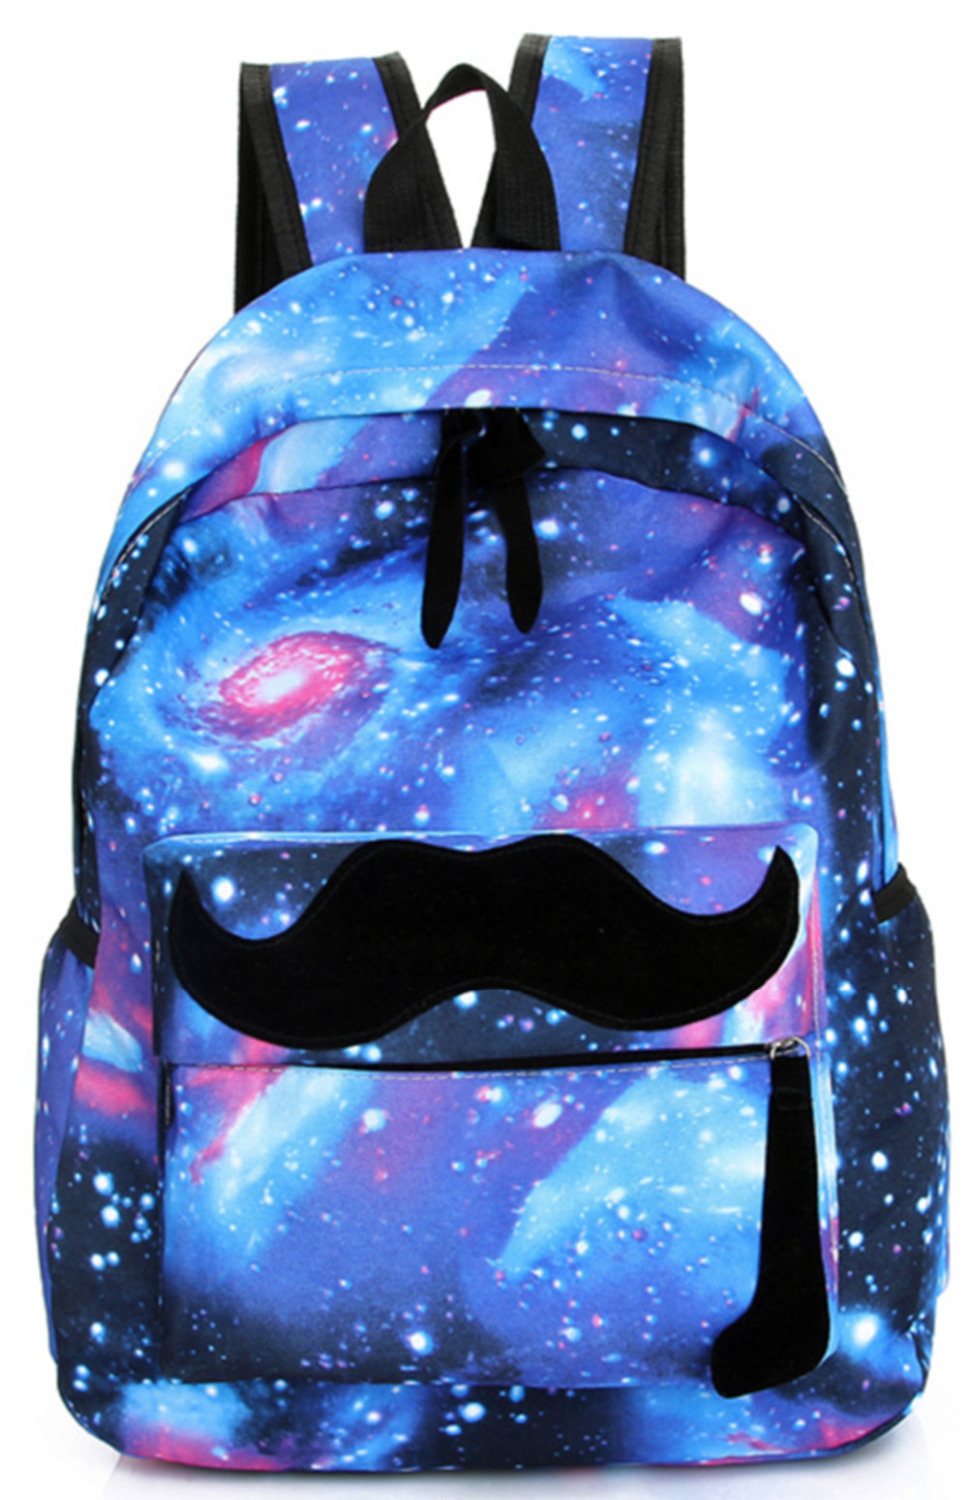 Awesome Backpacks For Girls 0Vnk5Nkl